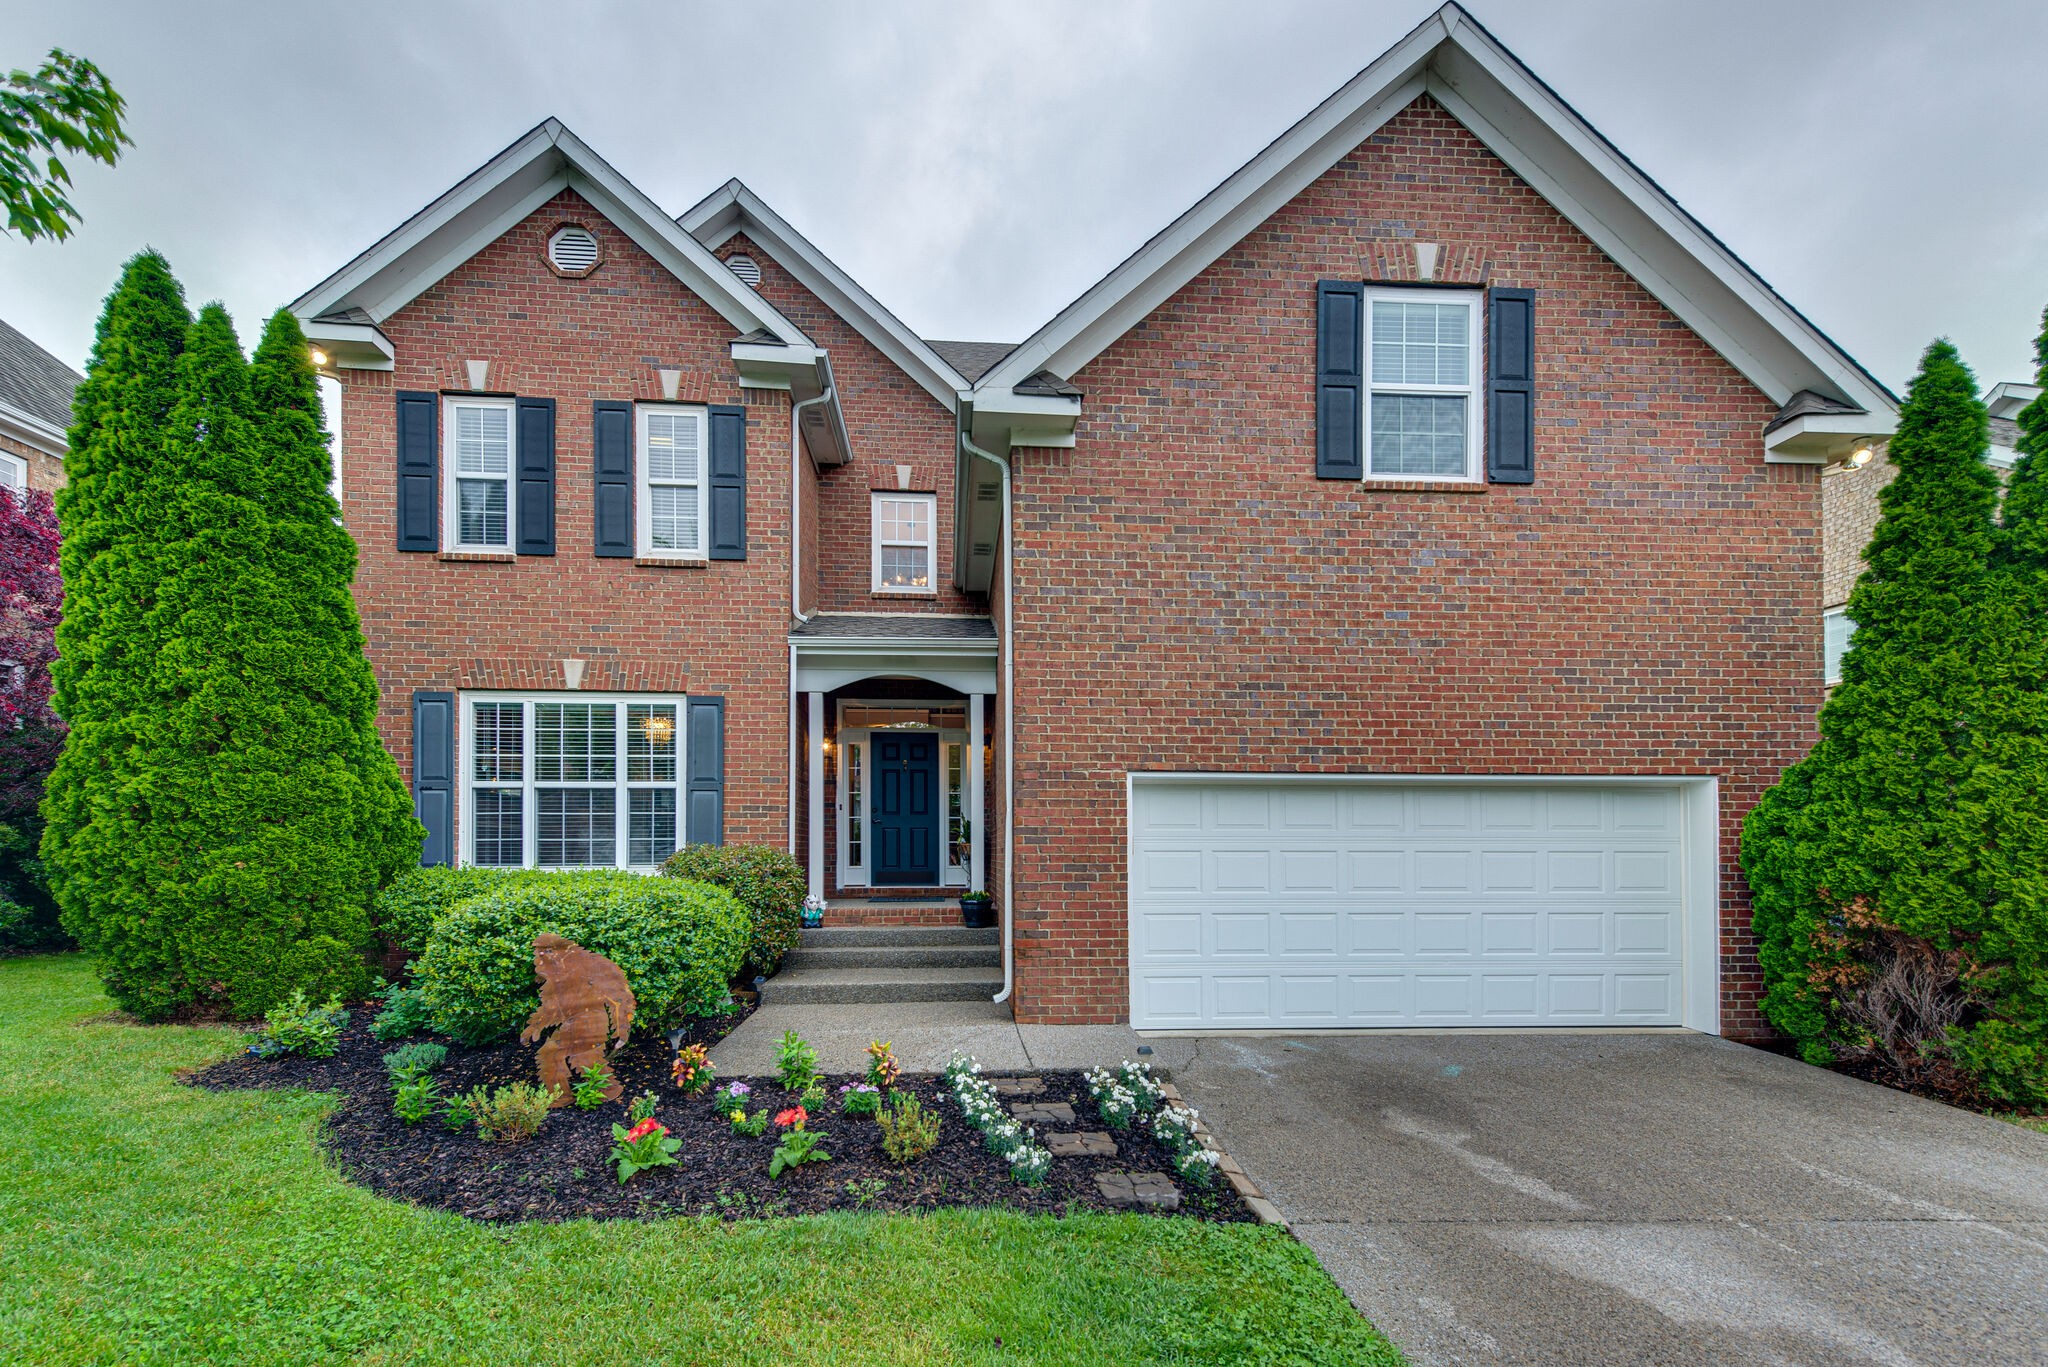 This all brick Williamson County home features a bright open floor plan, formal dining room, extra large bonus room with fireplace, oversized dream kitchen, 5 spacious bedrooms with large closets, hardwood and tile floors, the list just goes on and on...   Showings begin 5-1-21